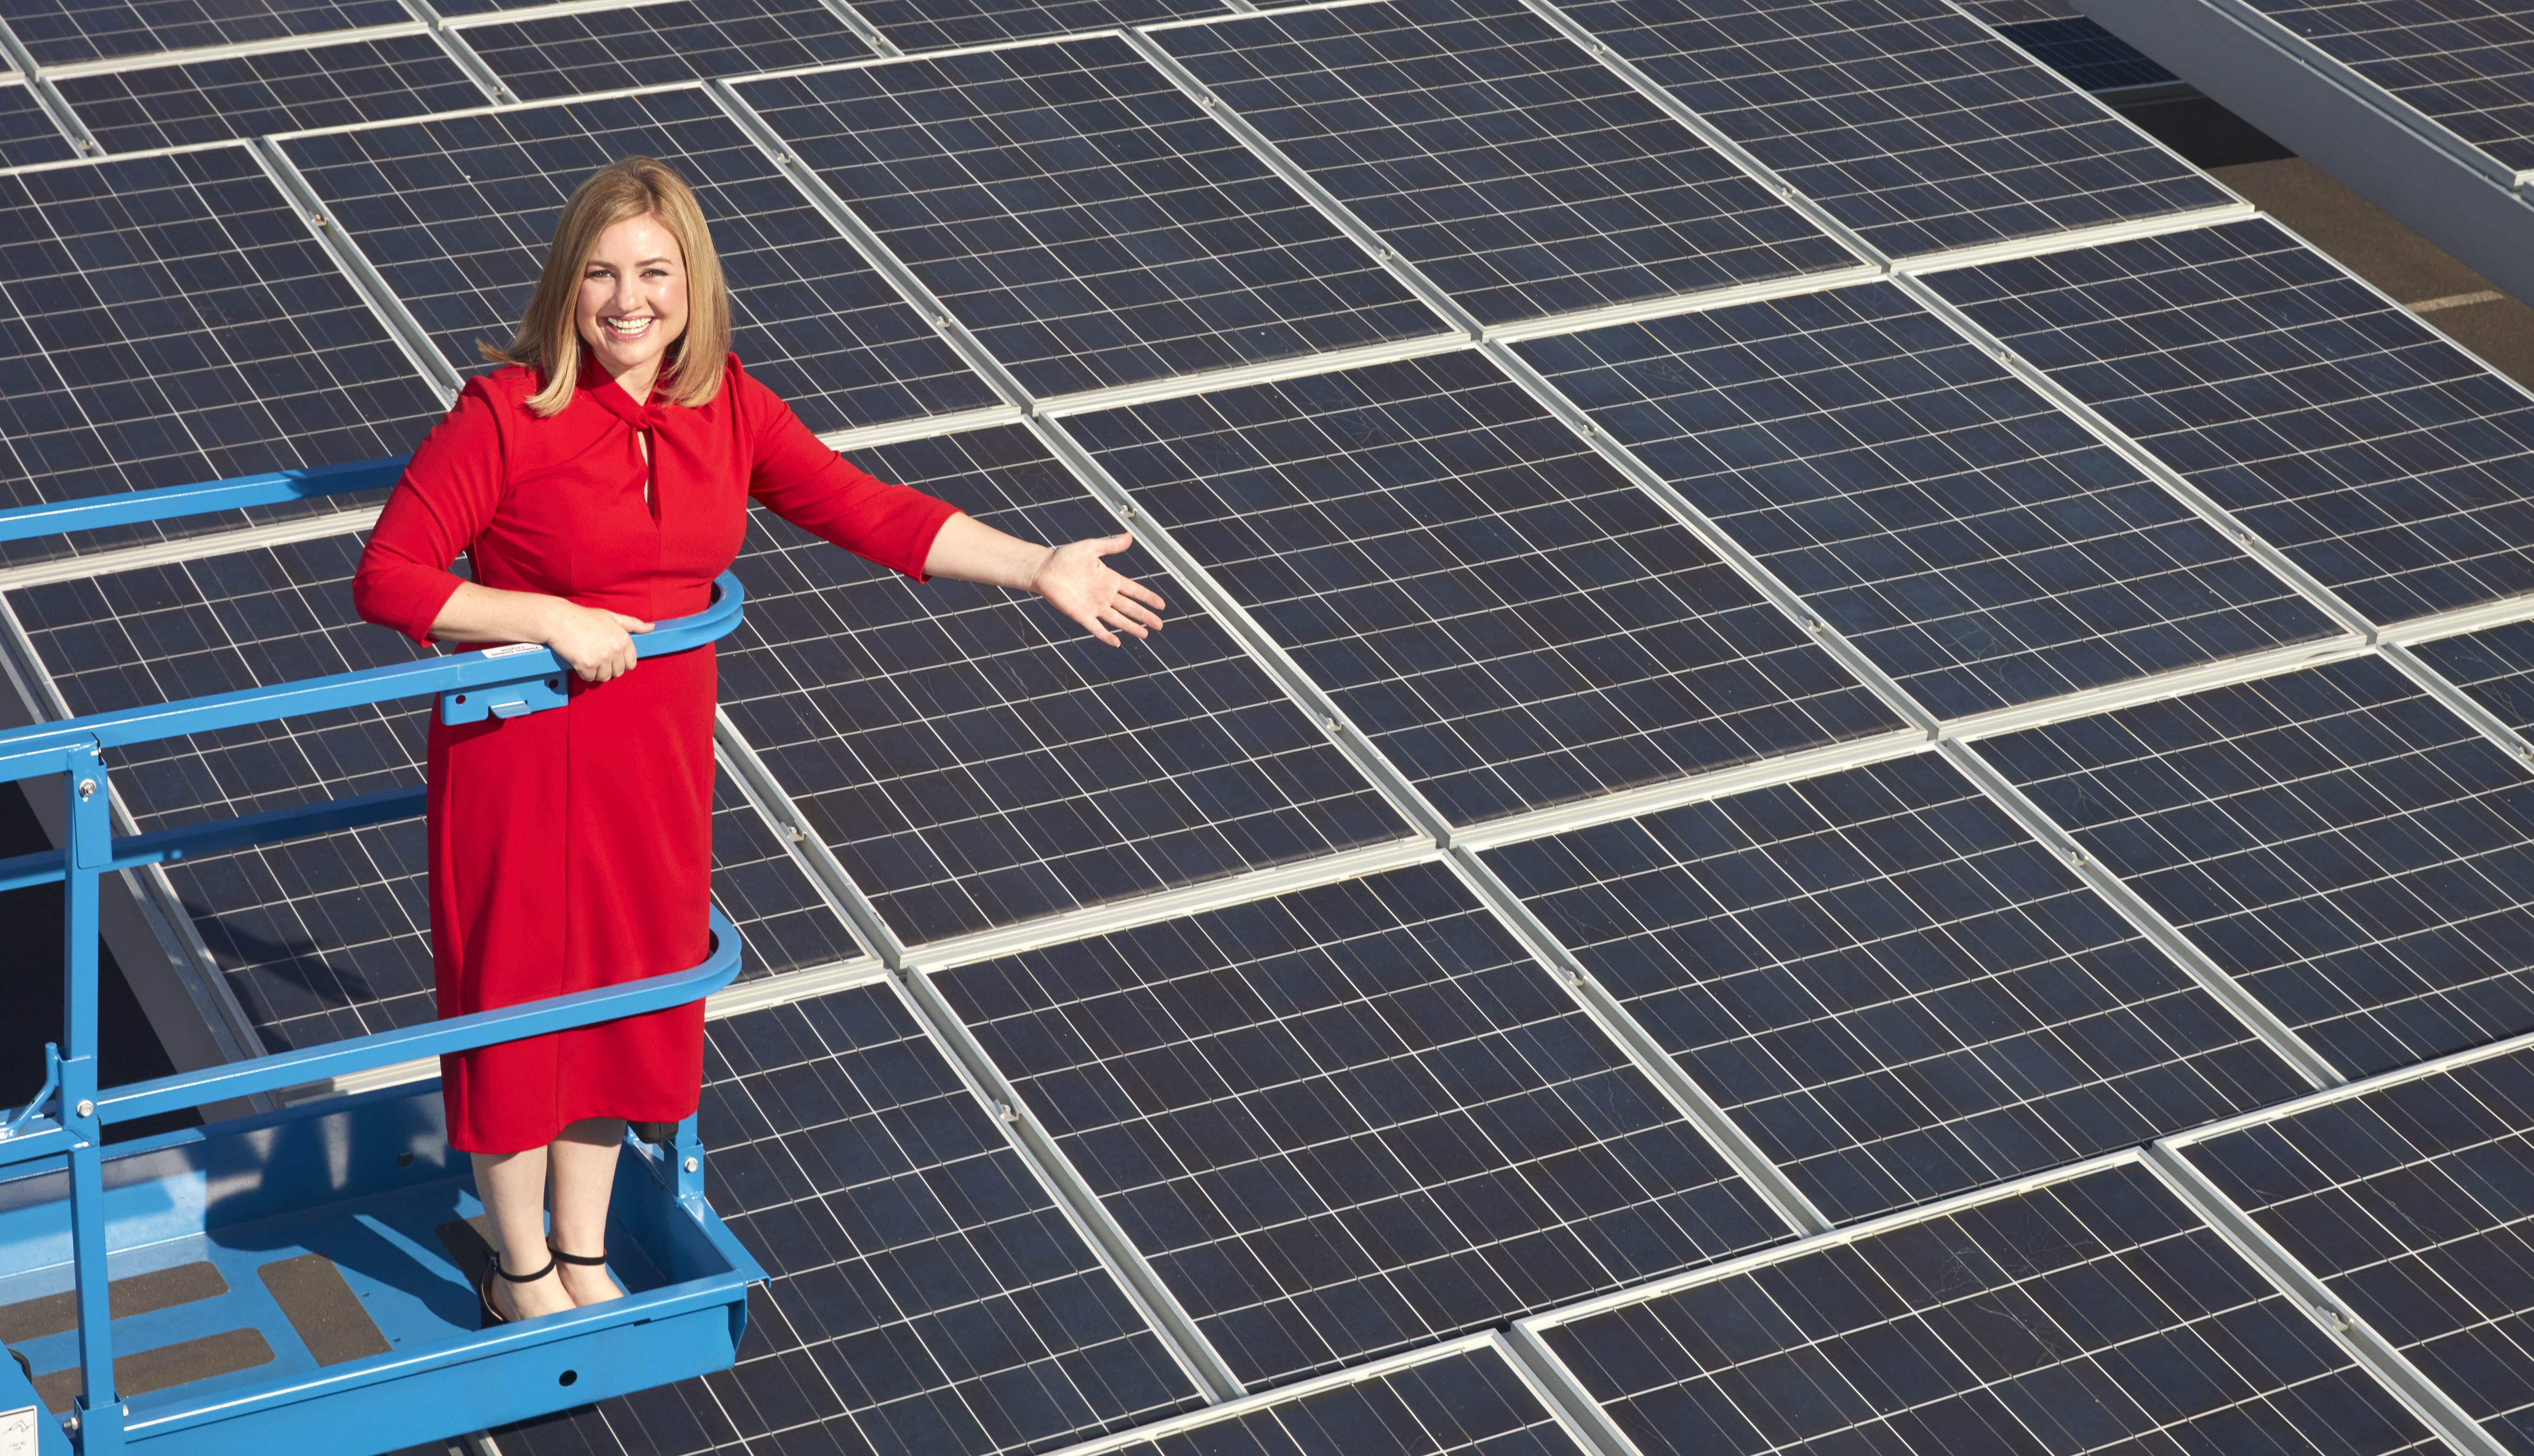 phoenix mayor kate gallego shows off a roof fitted with solar panels